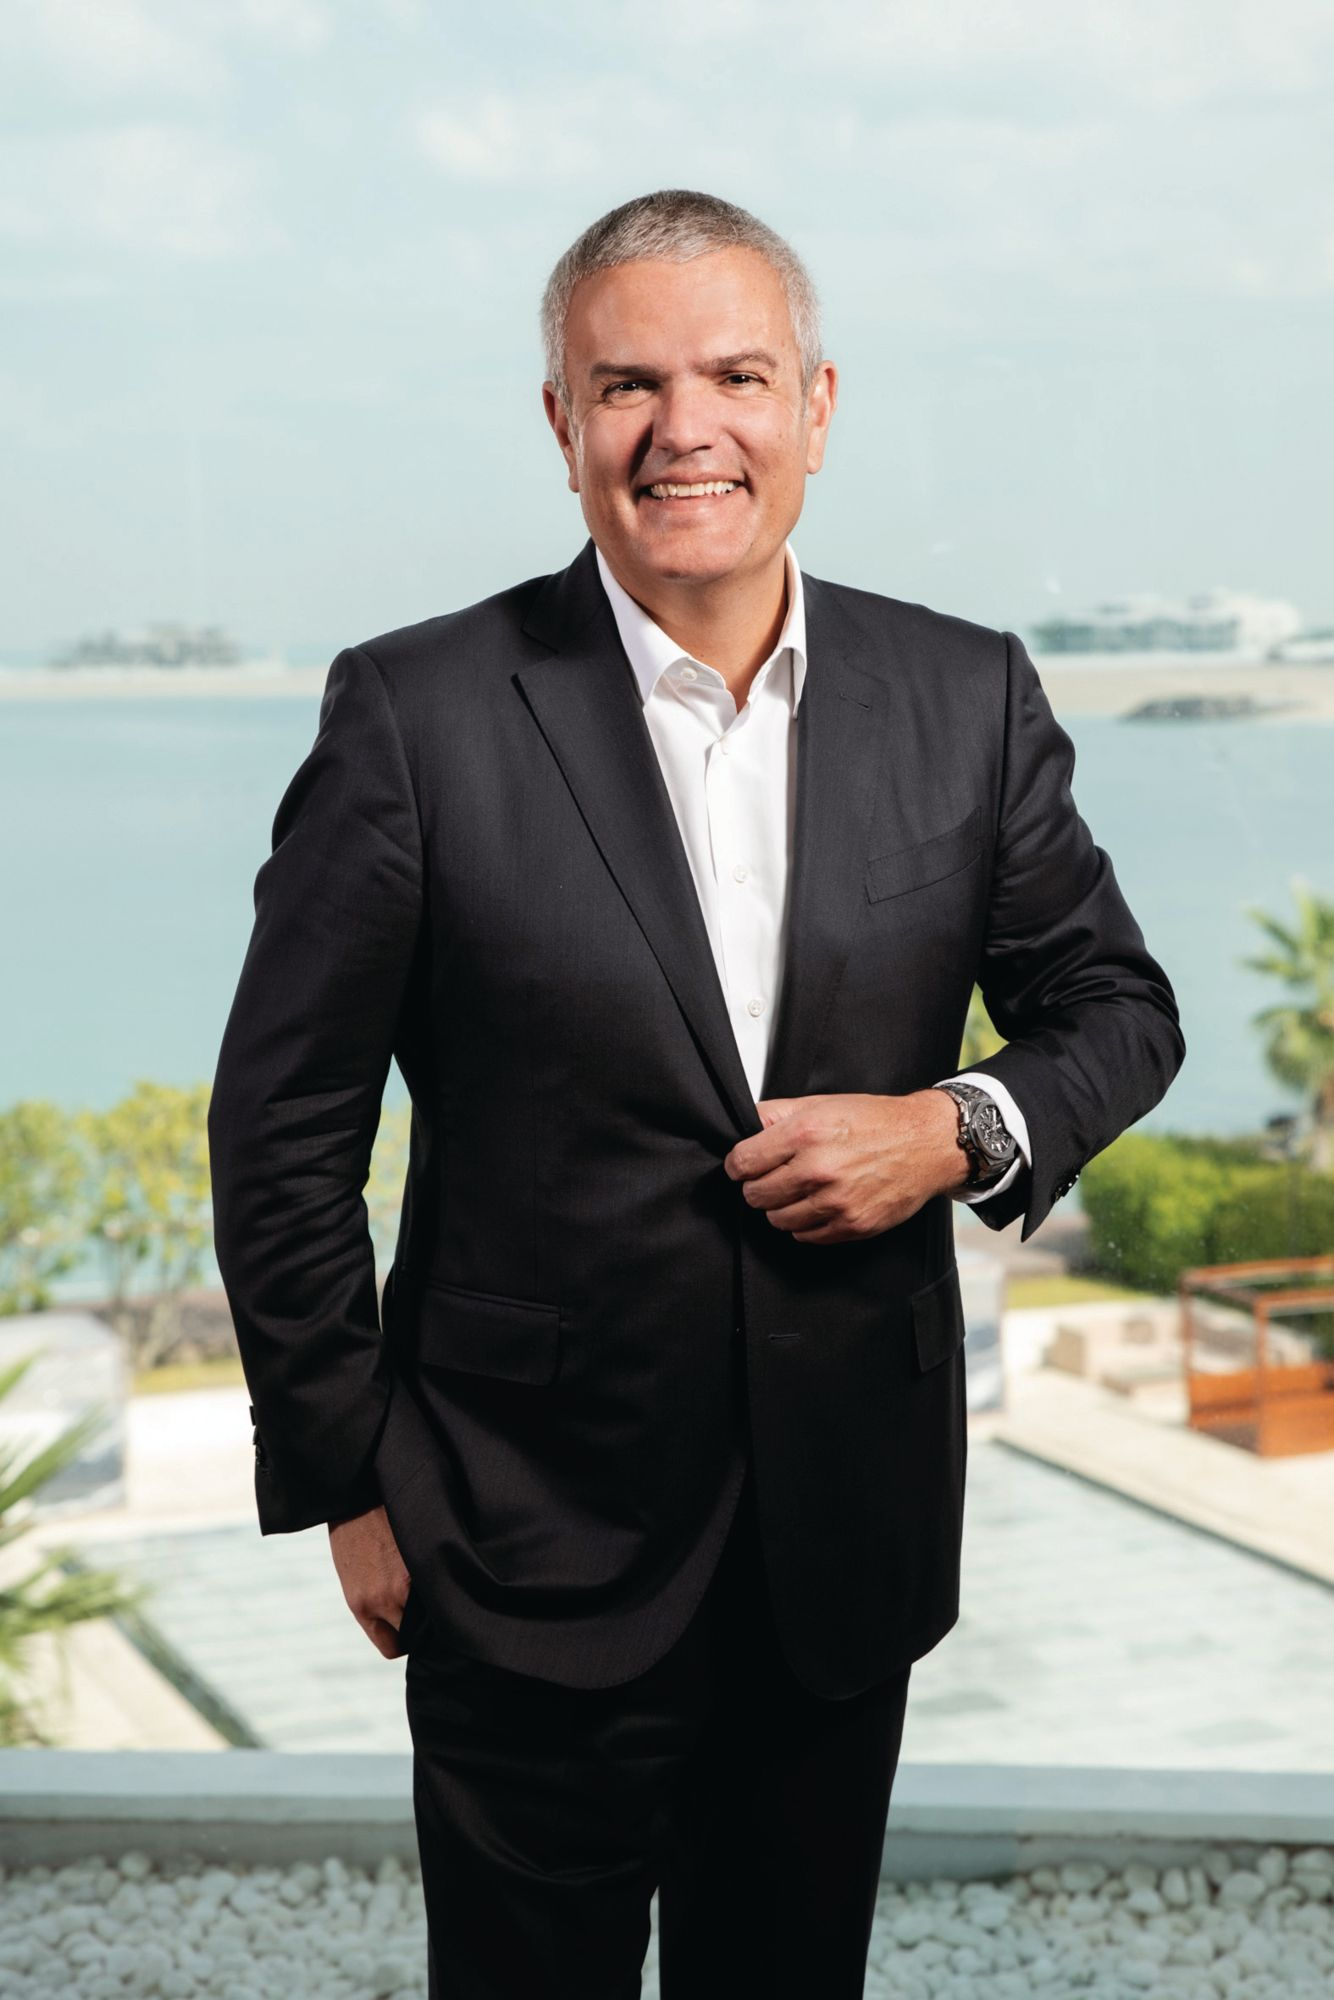 5 Minutes With Hublot CEO Ricardo Guadalupe